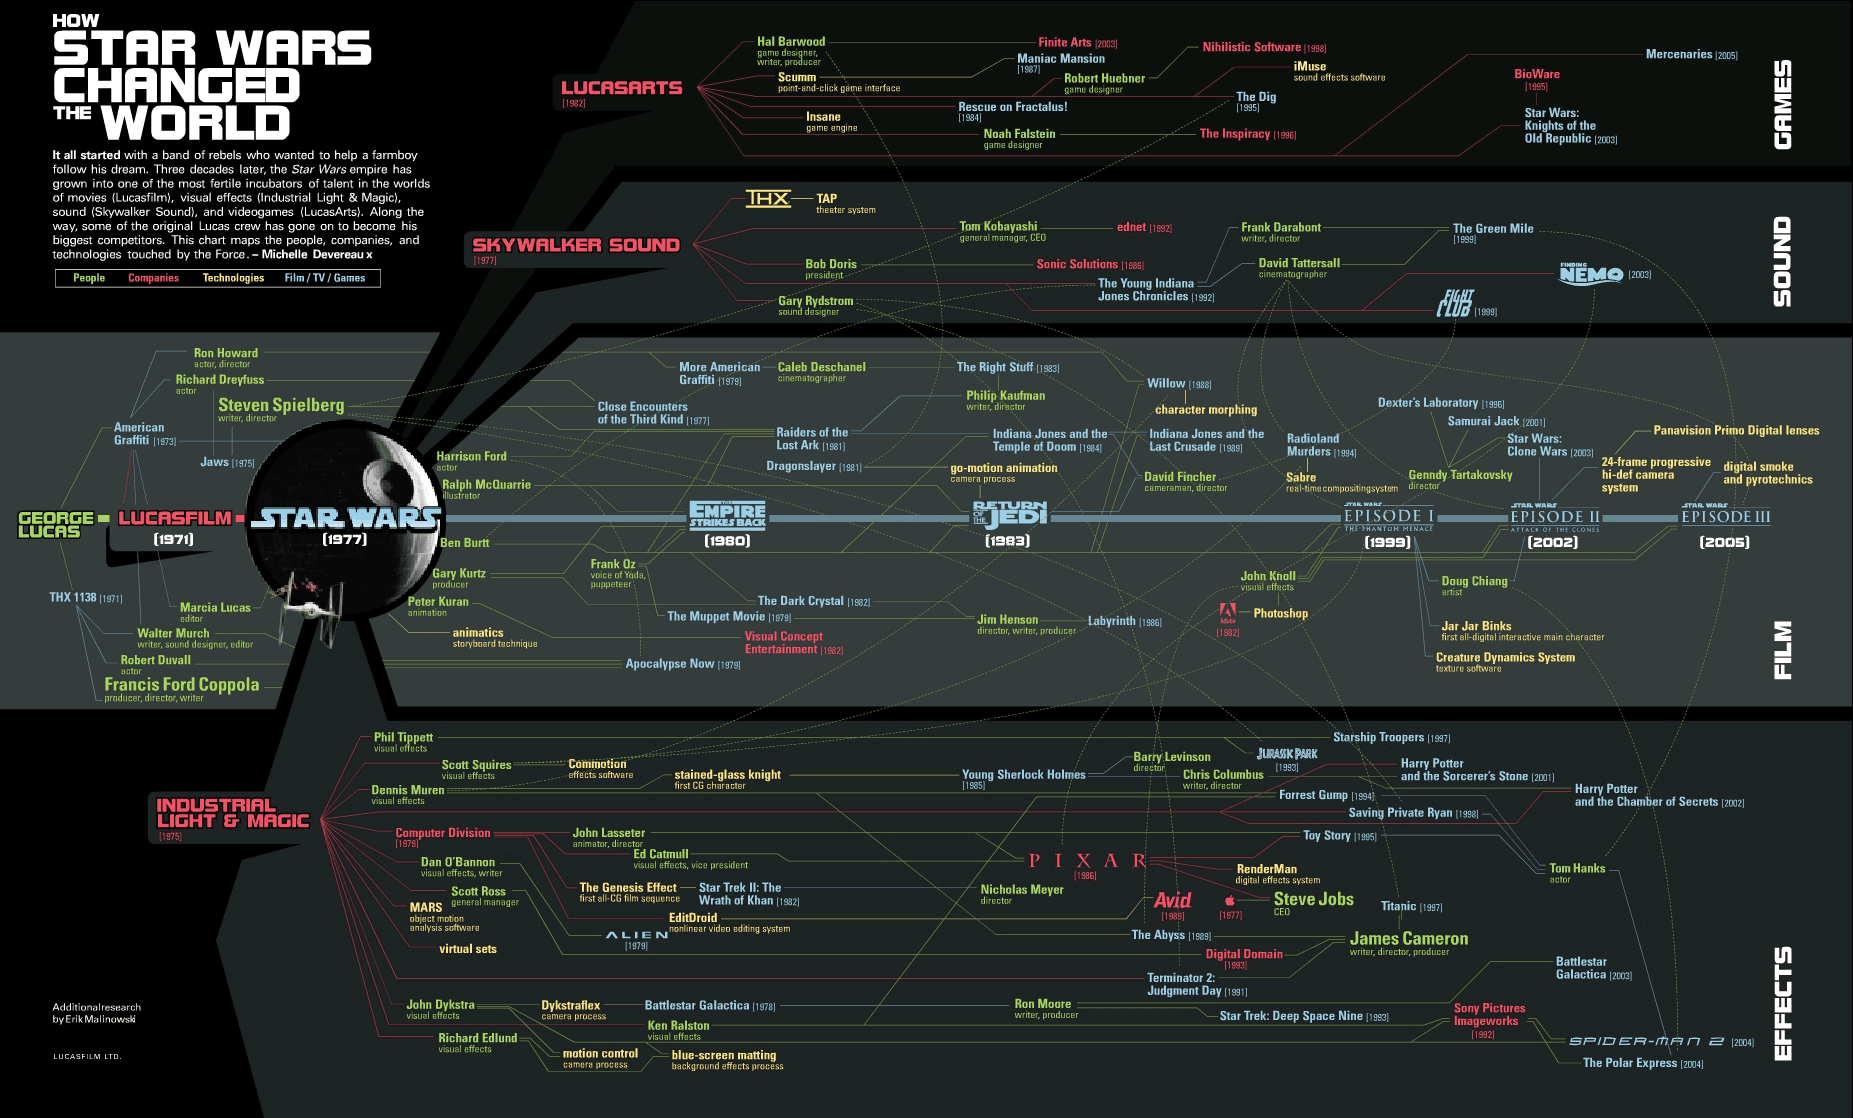 How Star Wars Changed The World [Infographic]